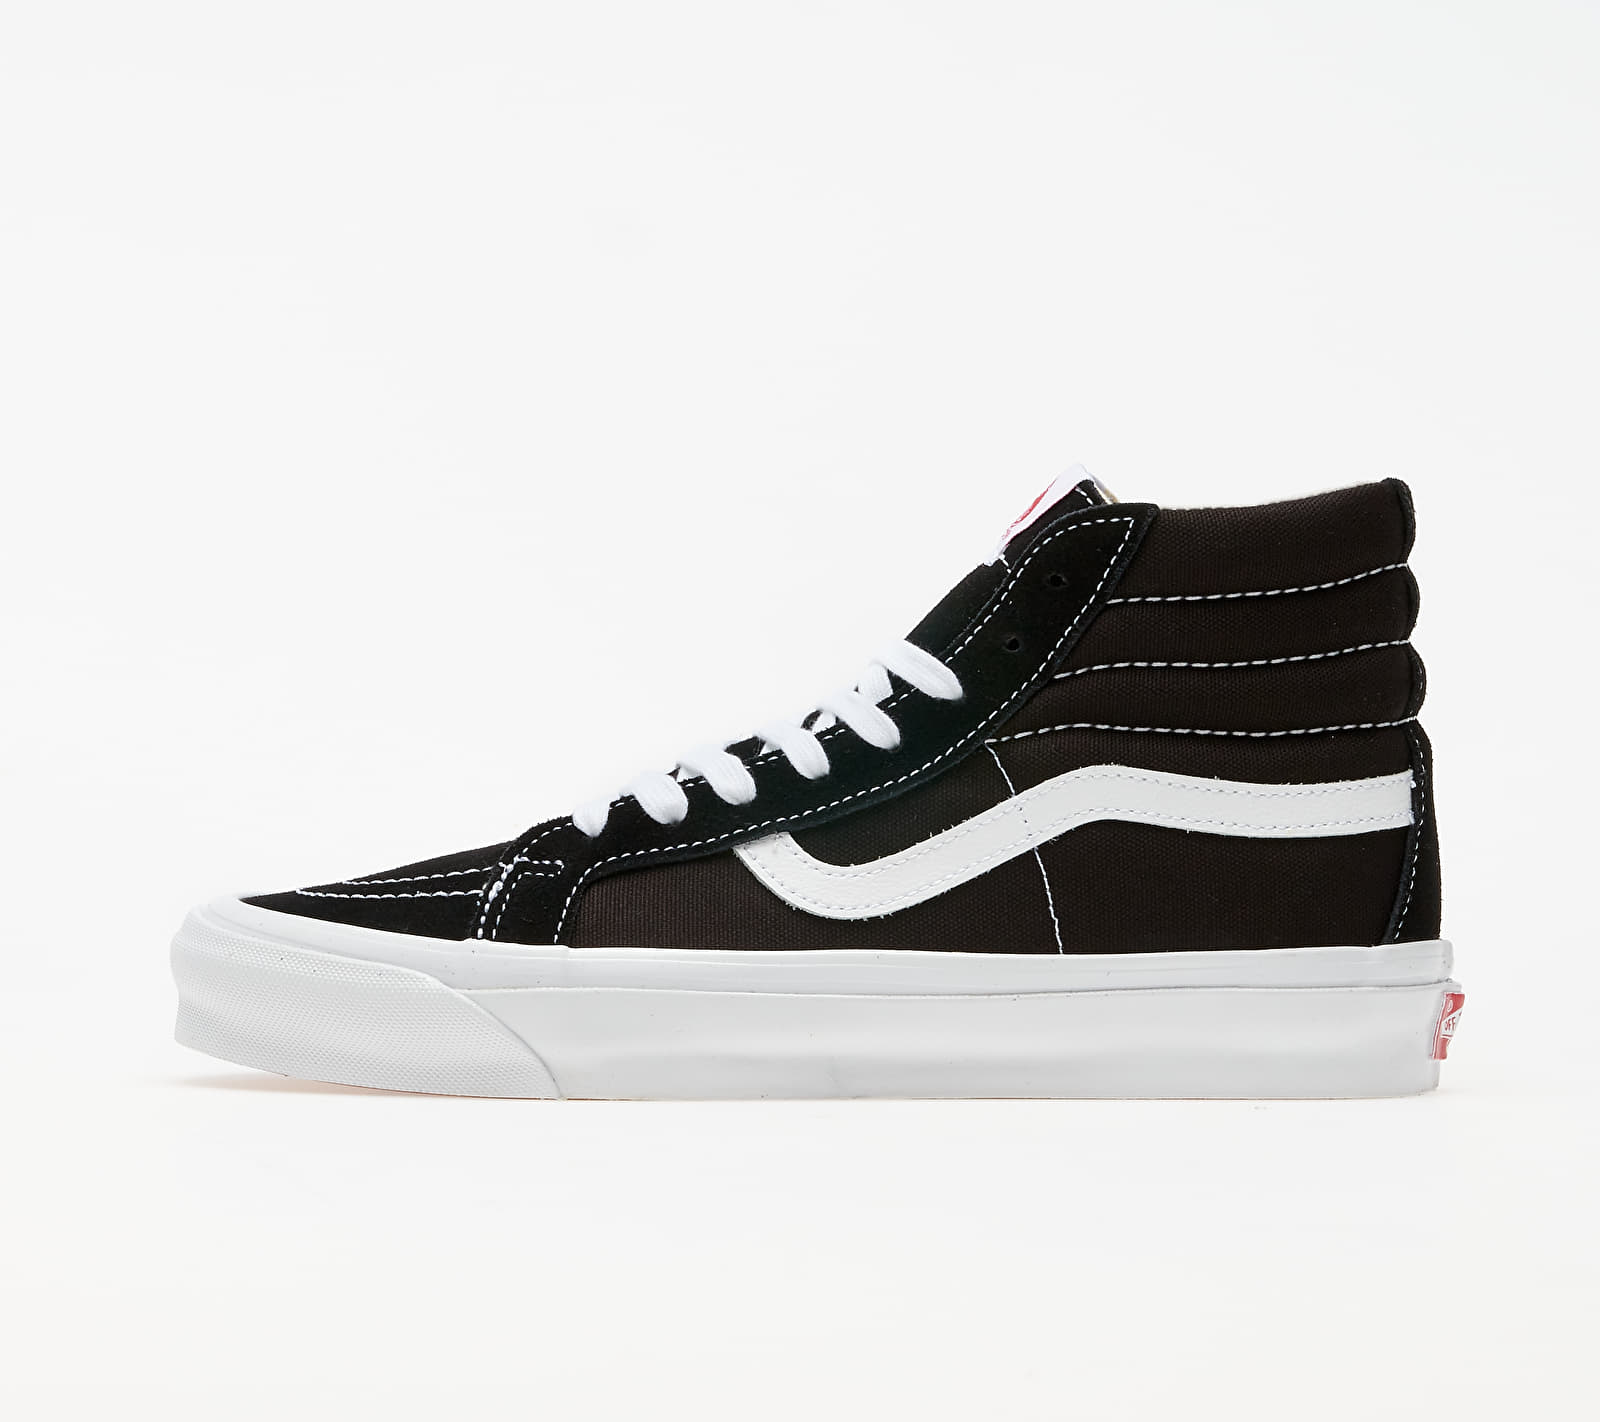 Vans Vault OG Sk8-Hi LX (Suede/ Canvas) Black/ True White EUR 36